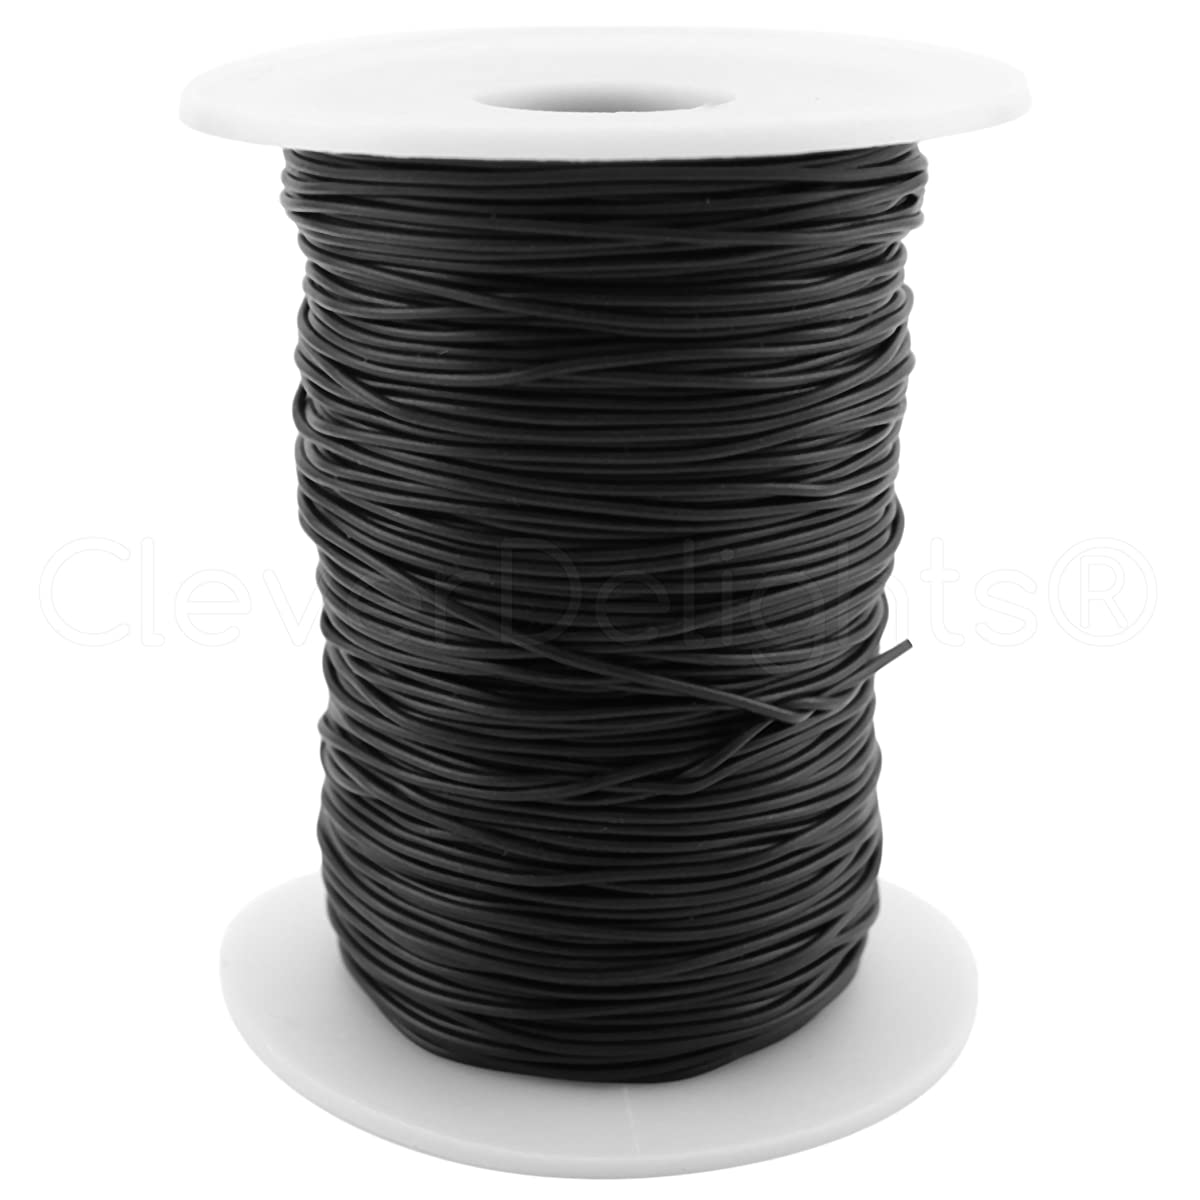 CleverDelights Black Solid Rubber Cord - 30 Feet - 1mm (1/32